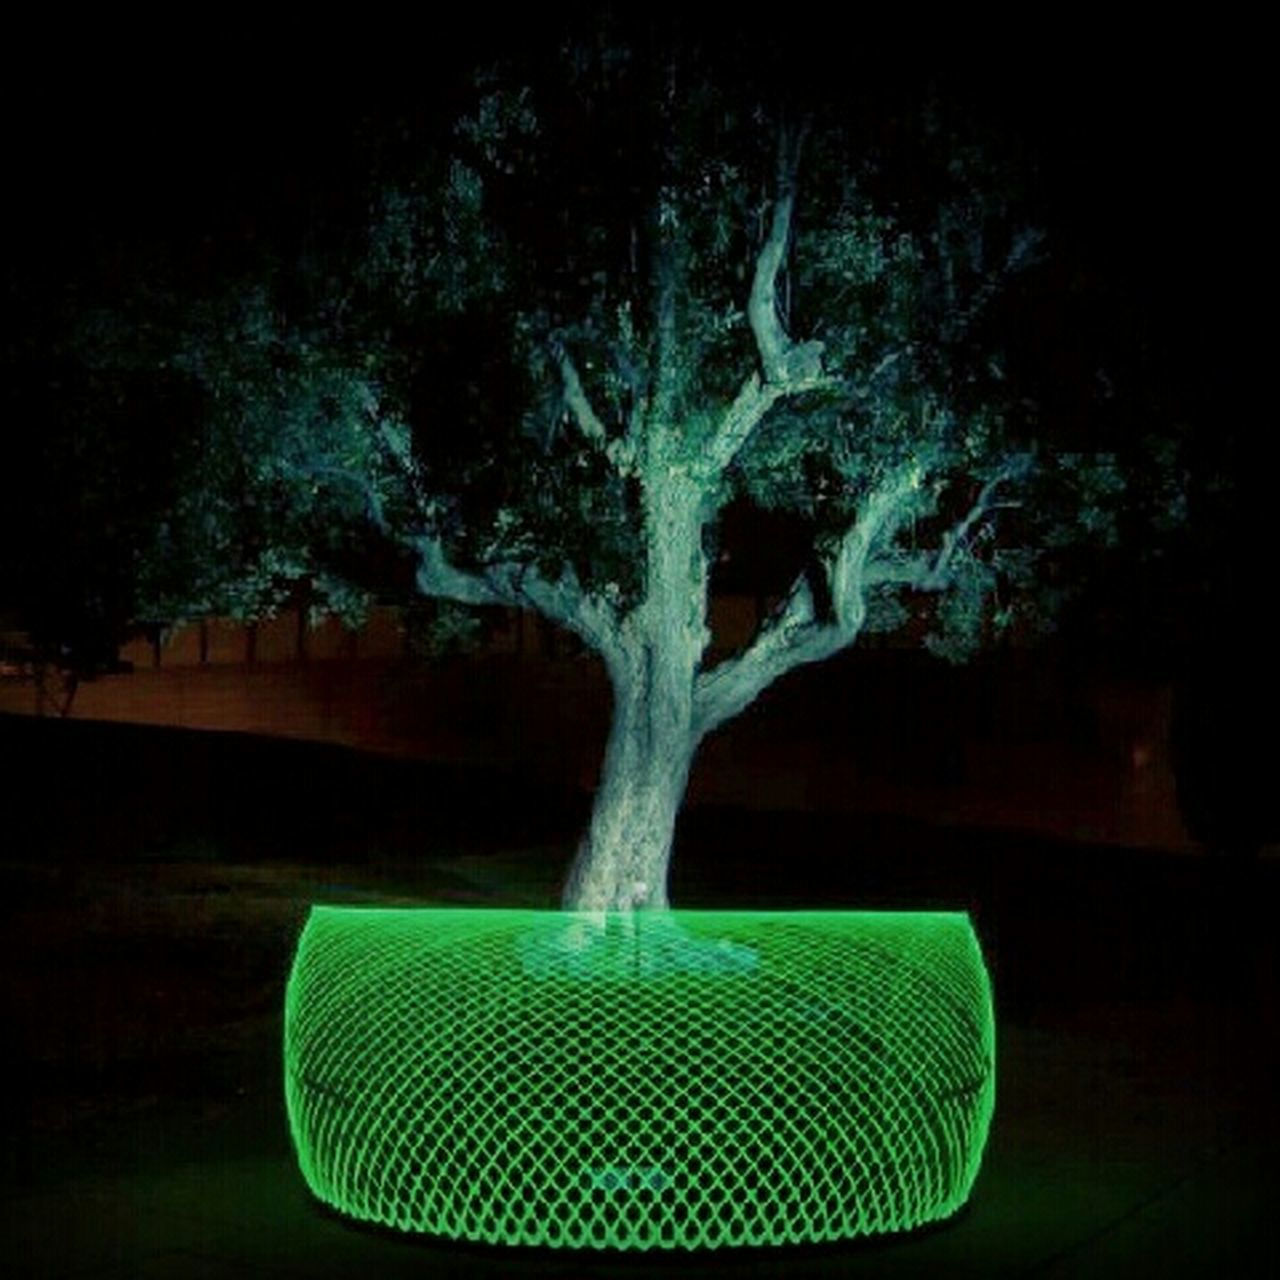 night, tree, green color, no people, outdoors